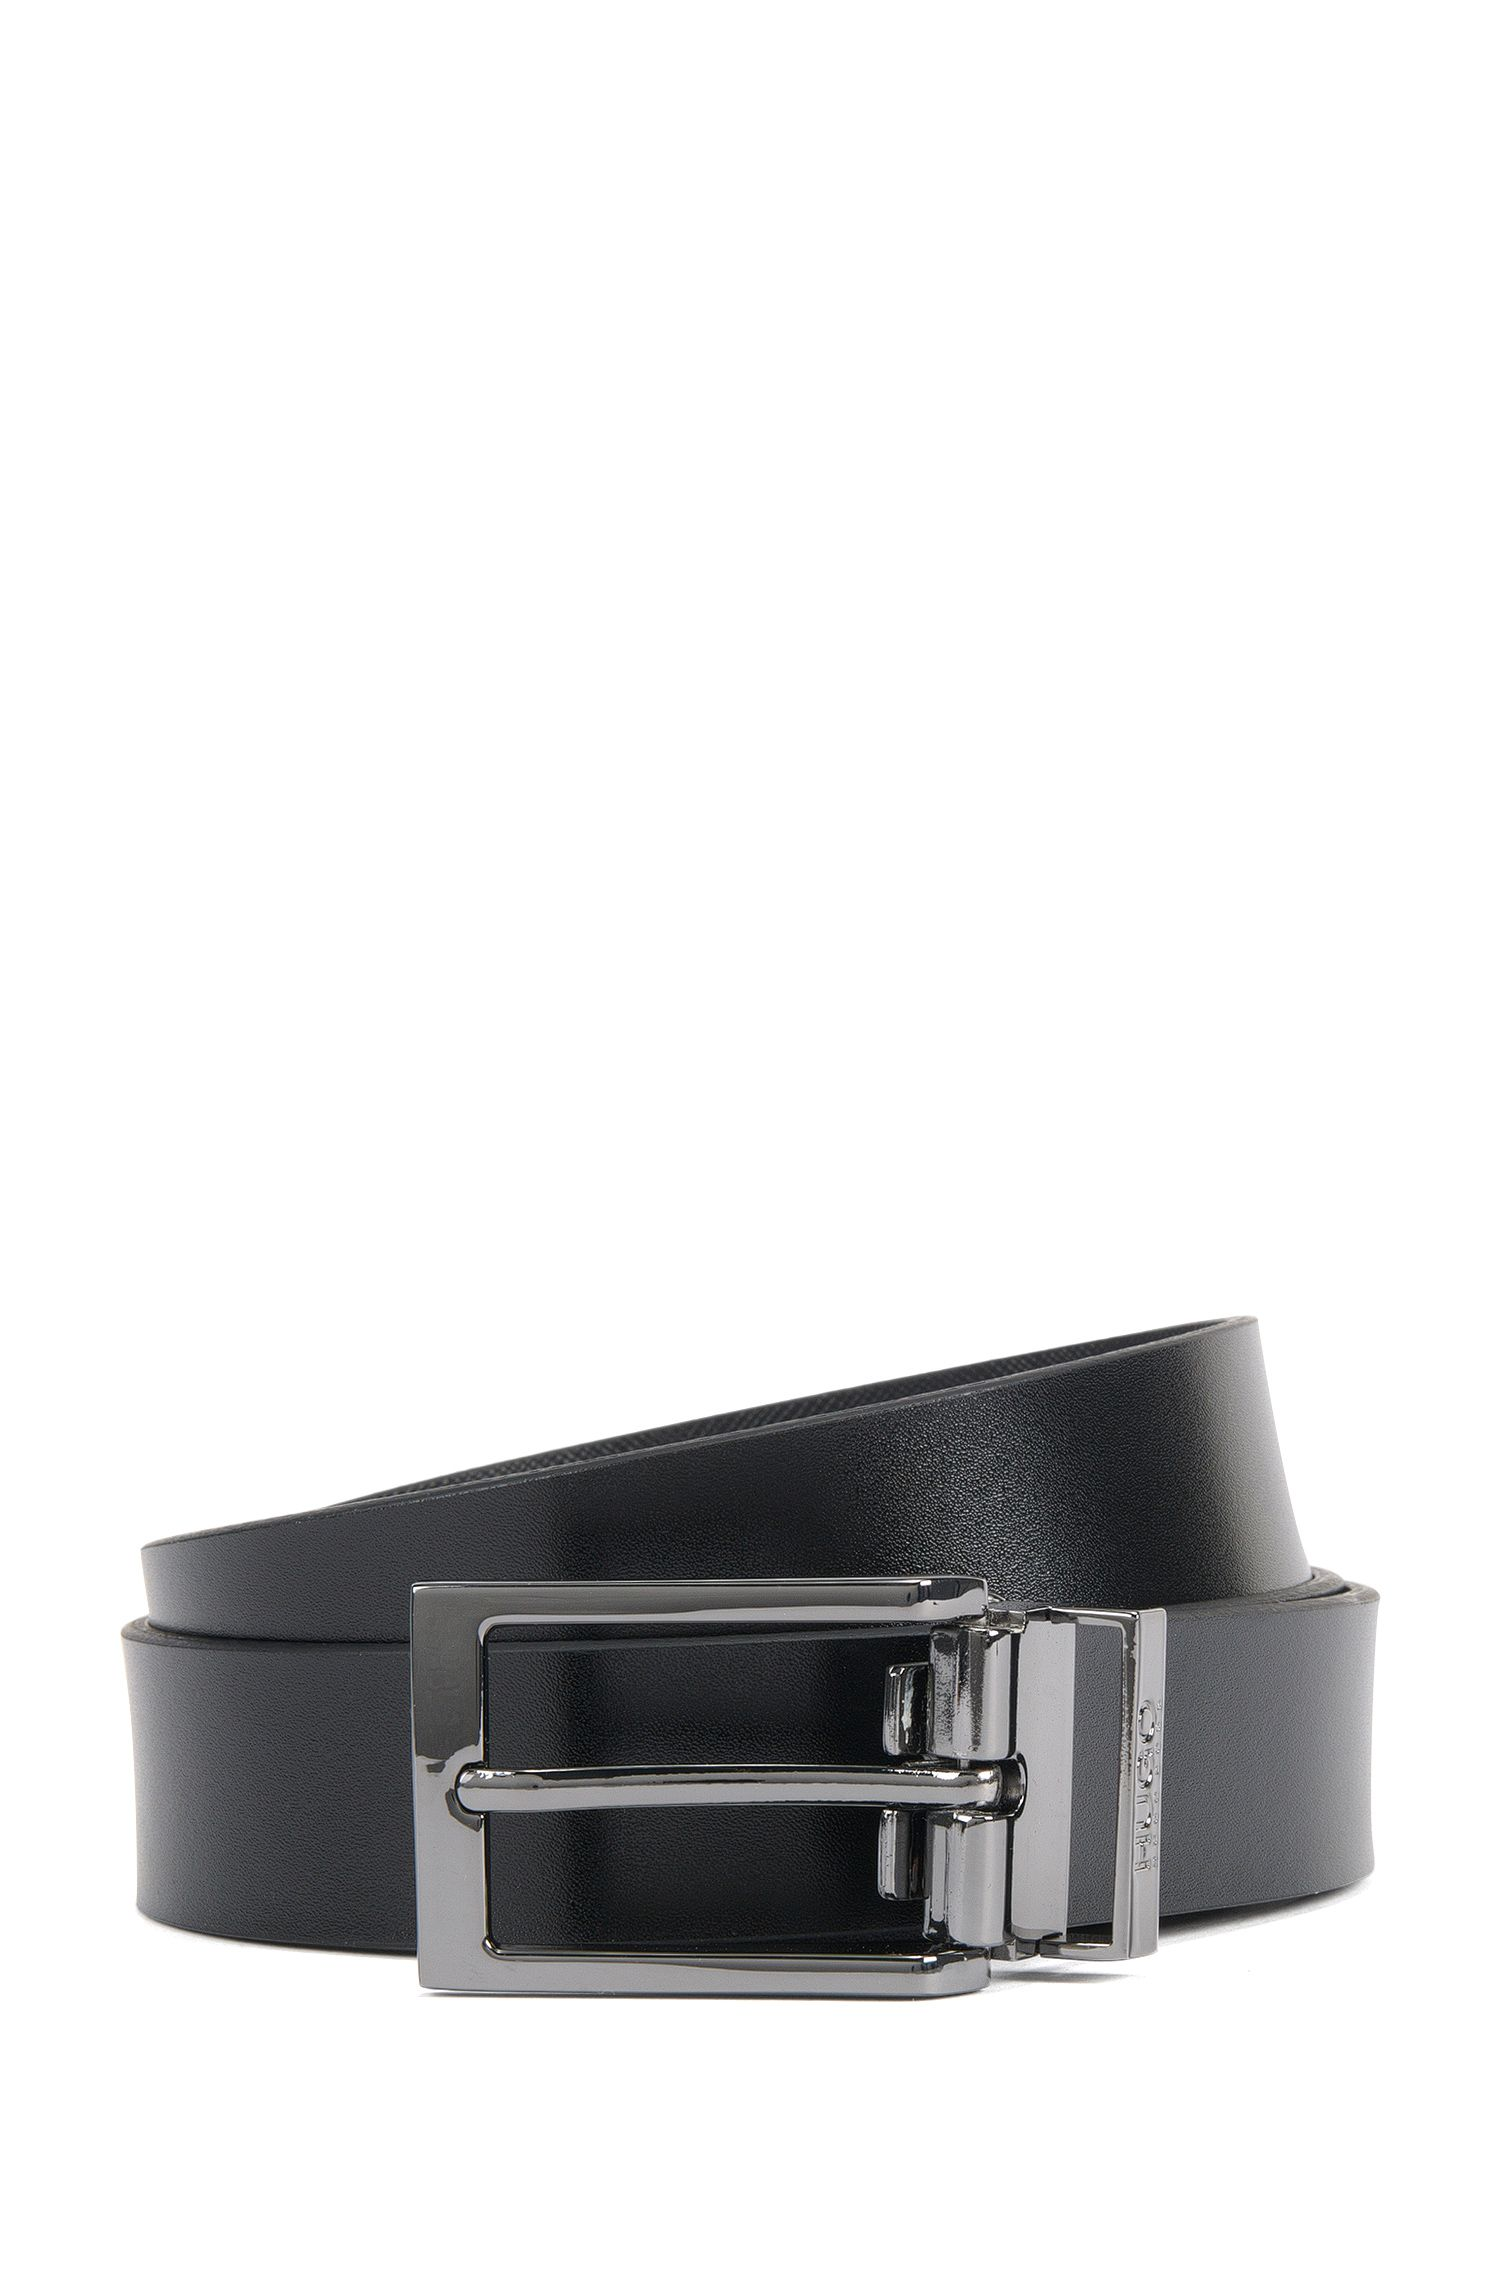 Reversible belt in smooth and Saffiano embossed leather